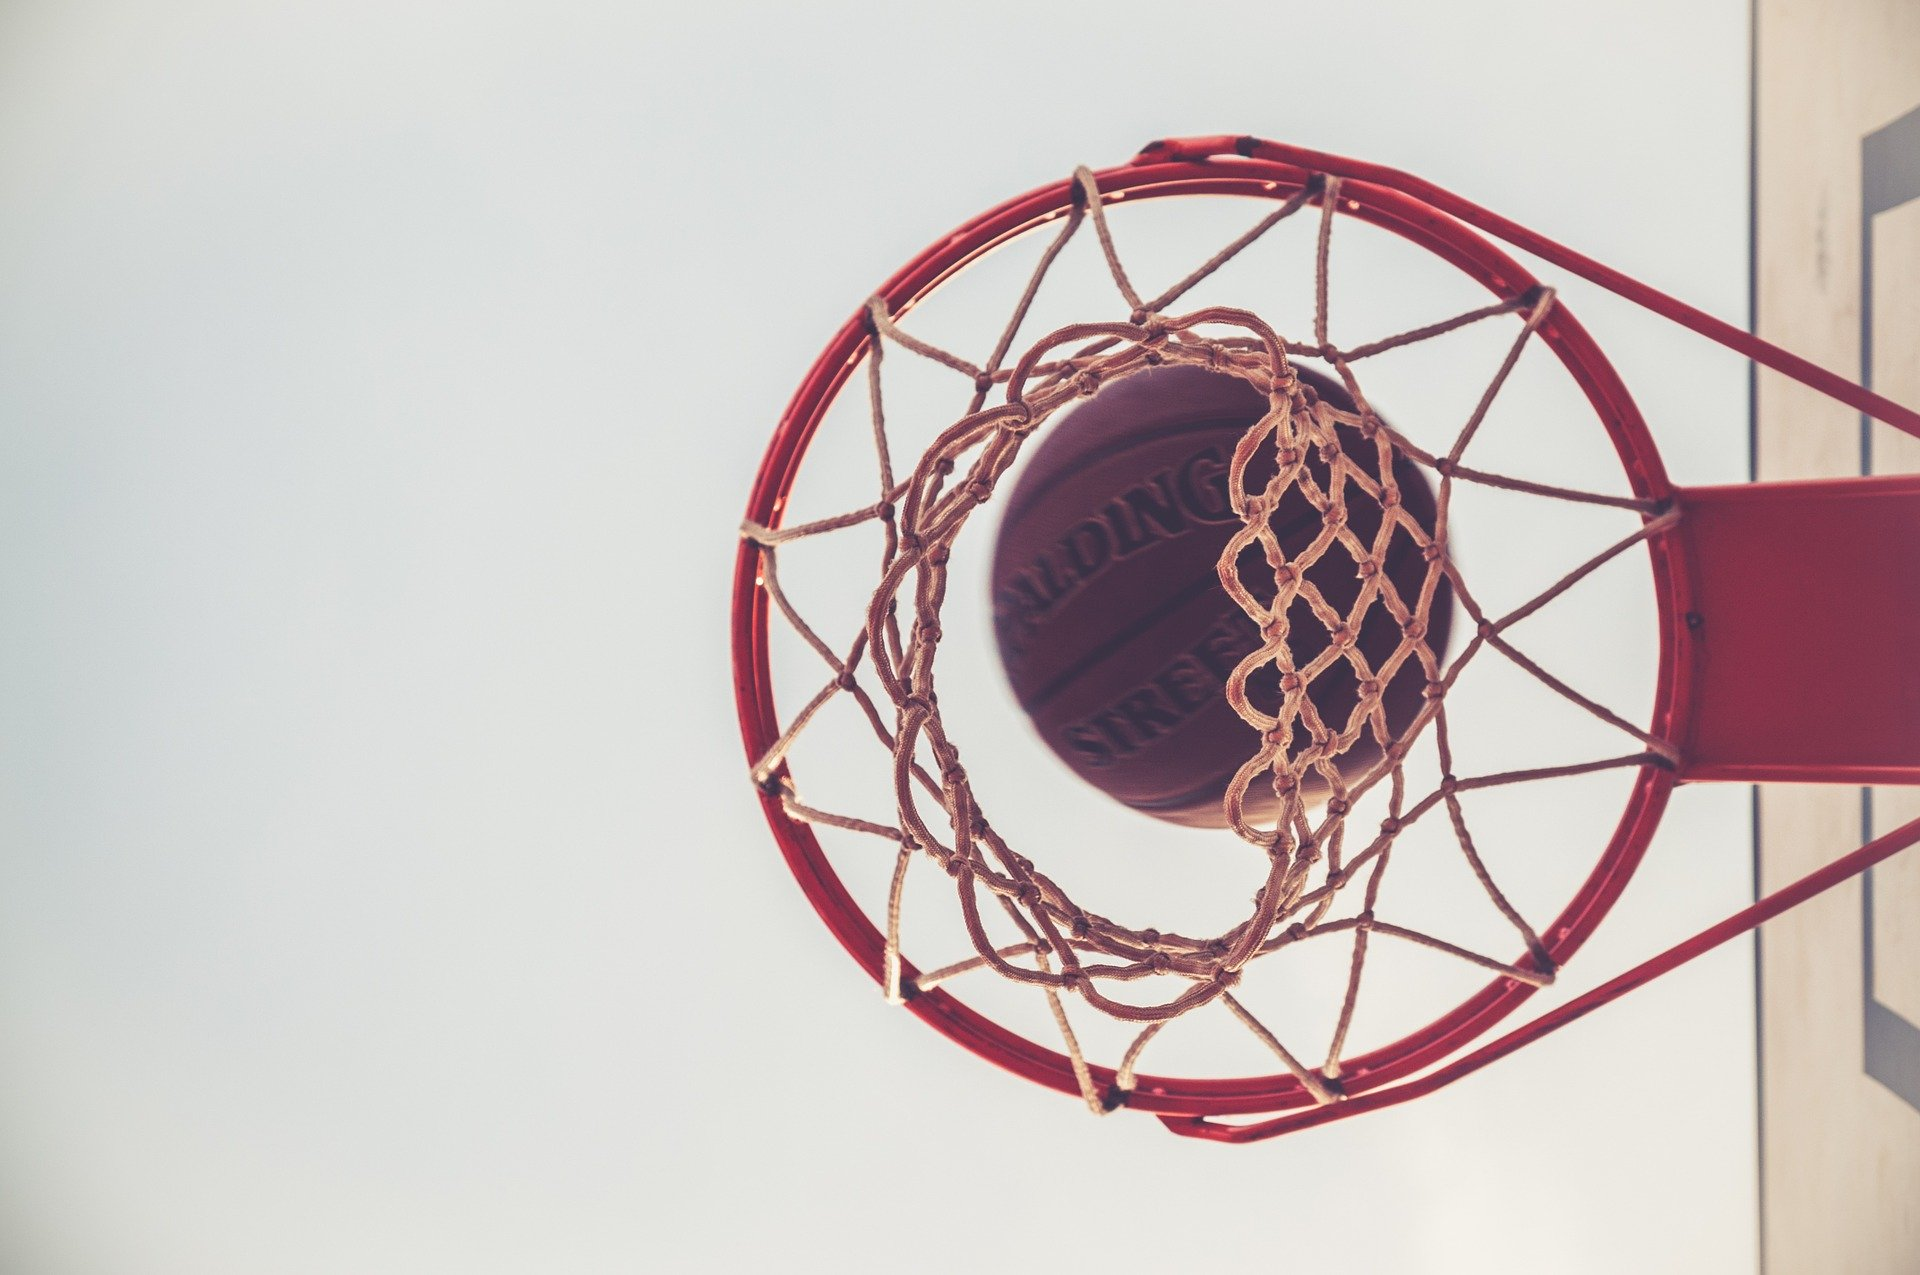 Basketball Equipment Specialists